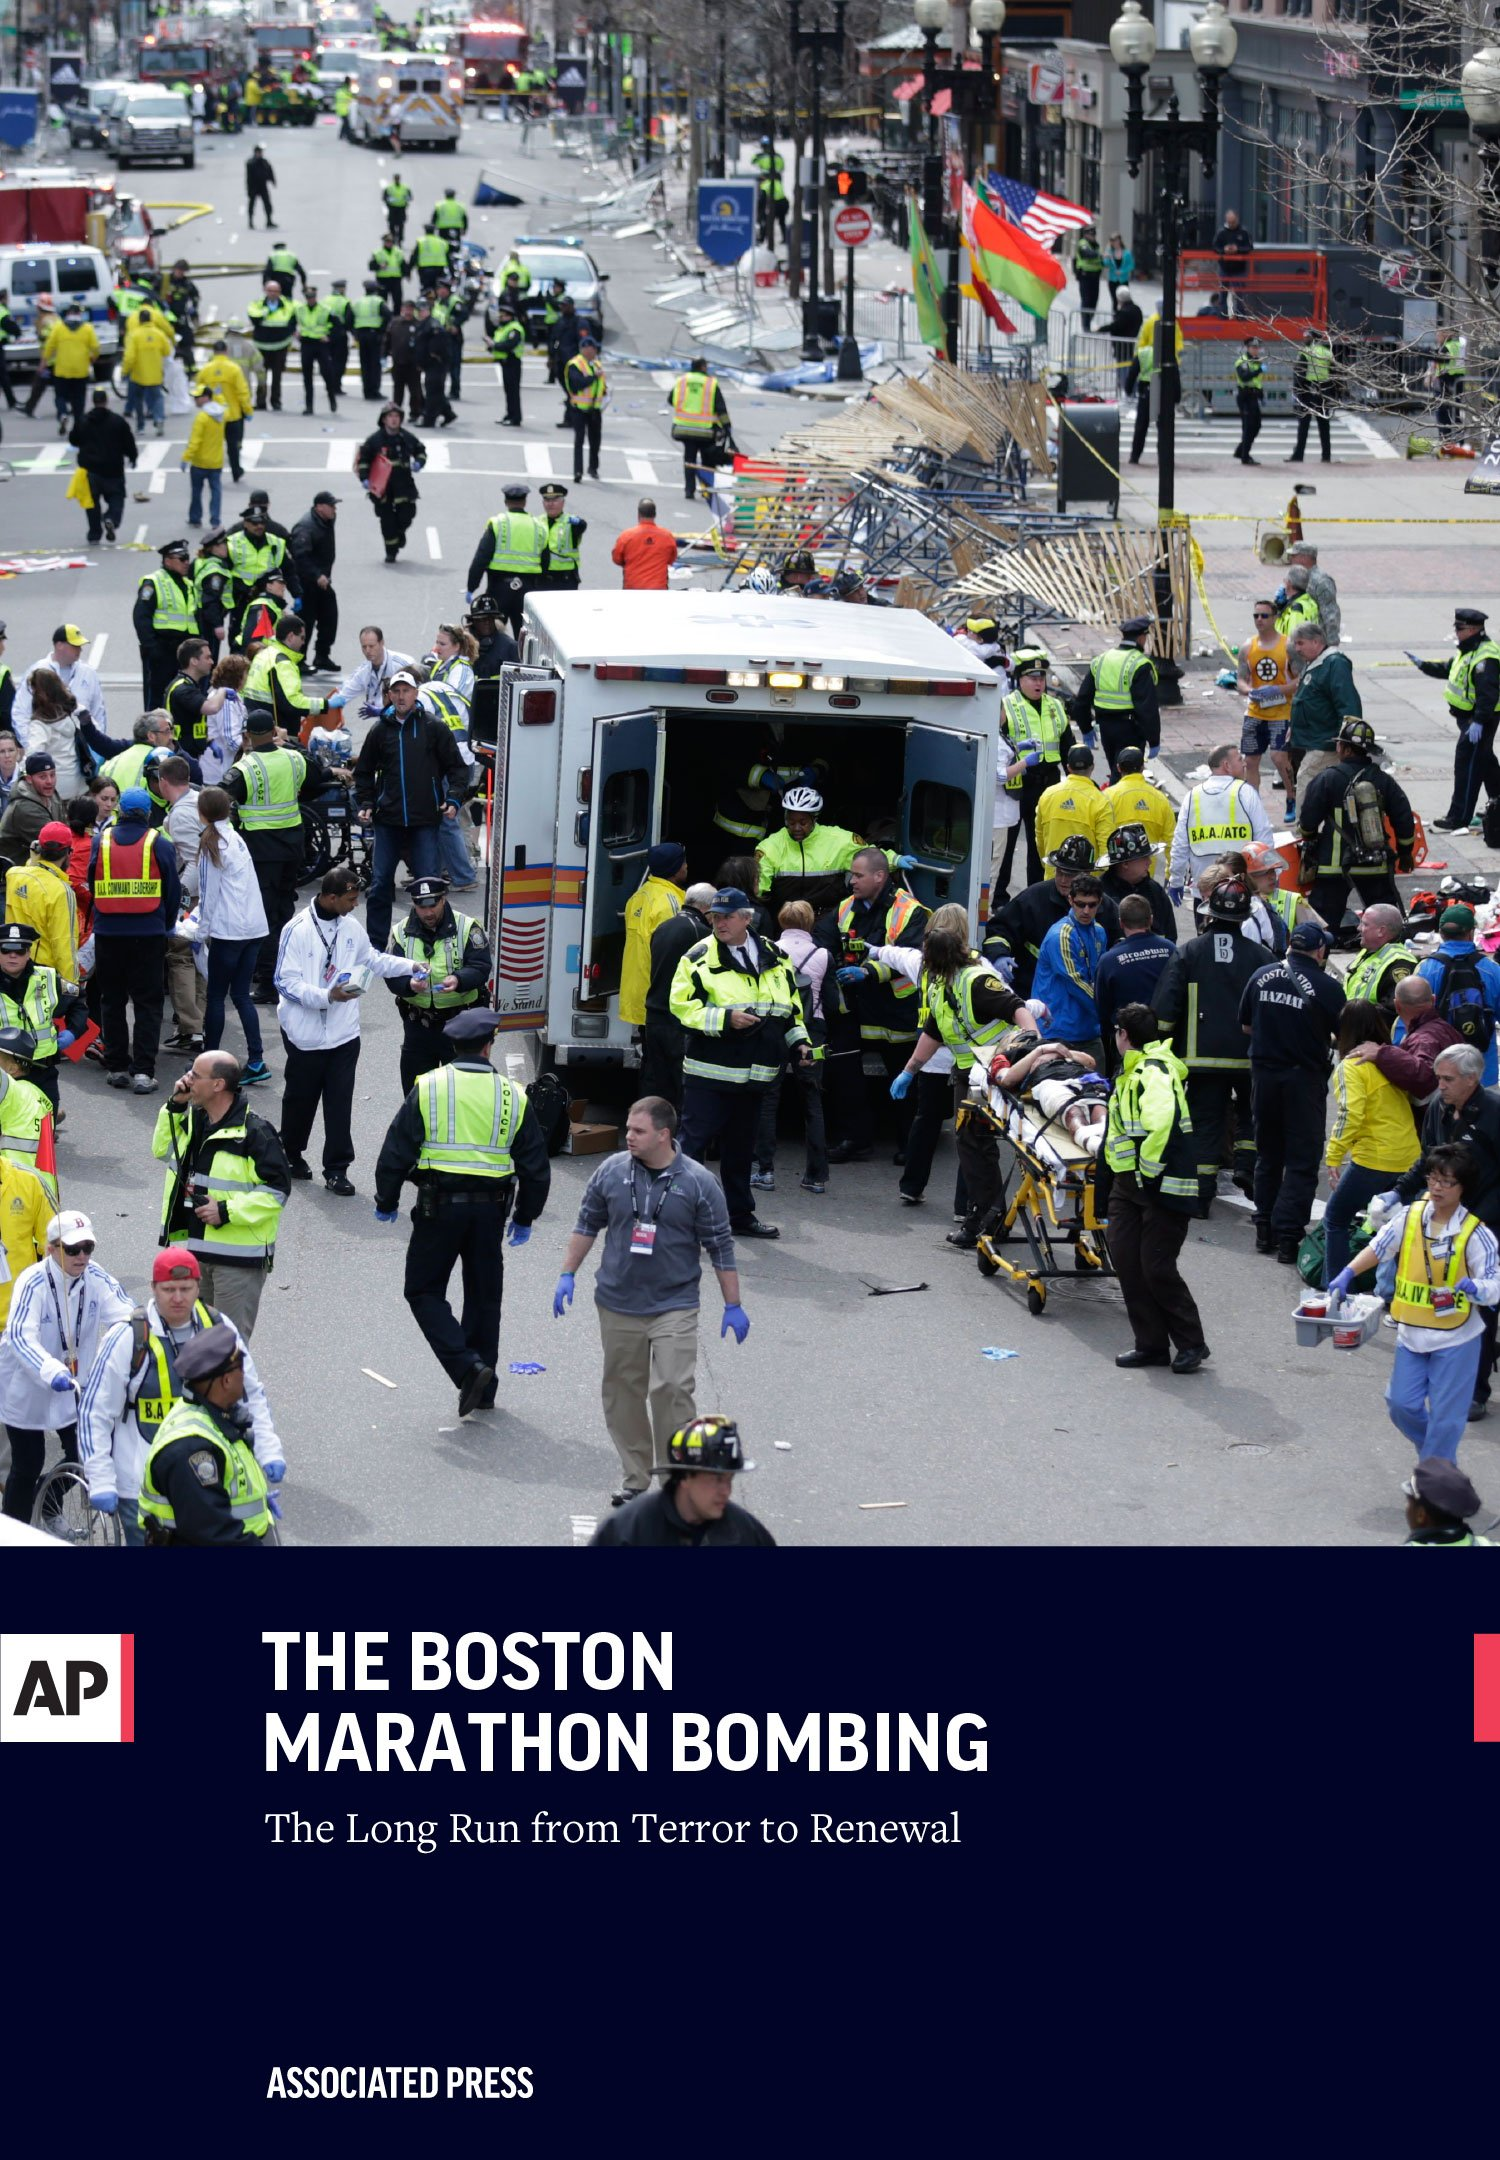 The Boston Marathon Bombing: The Long Run from Terror to Renewal